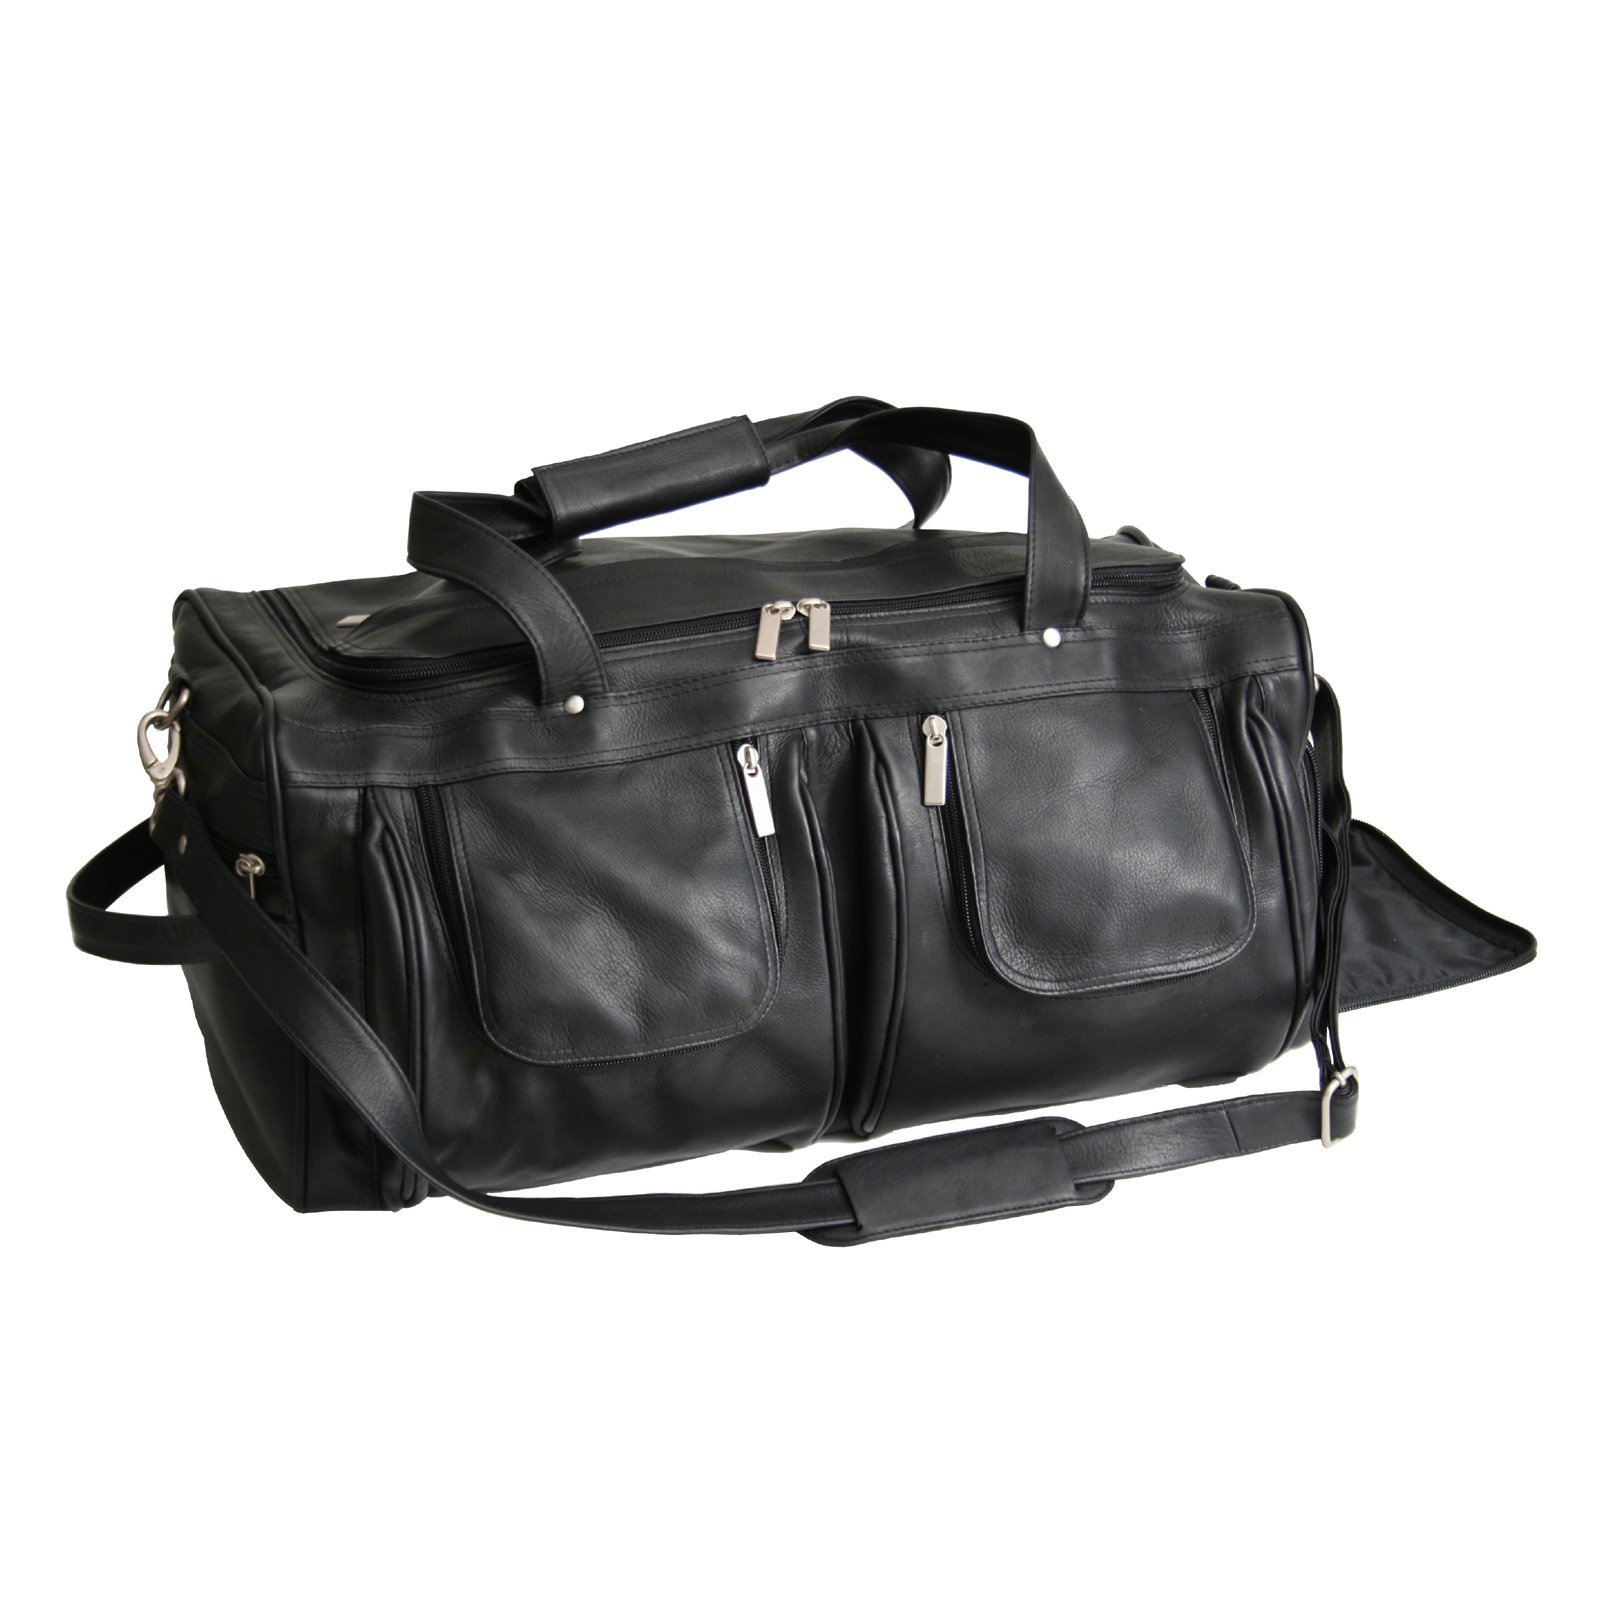 Royce Leather Colombian Vaquetta Leather Sports Duffel Travel Bag